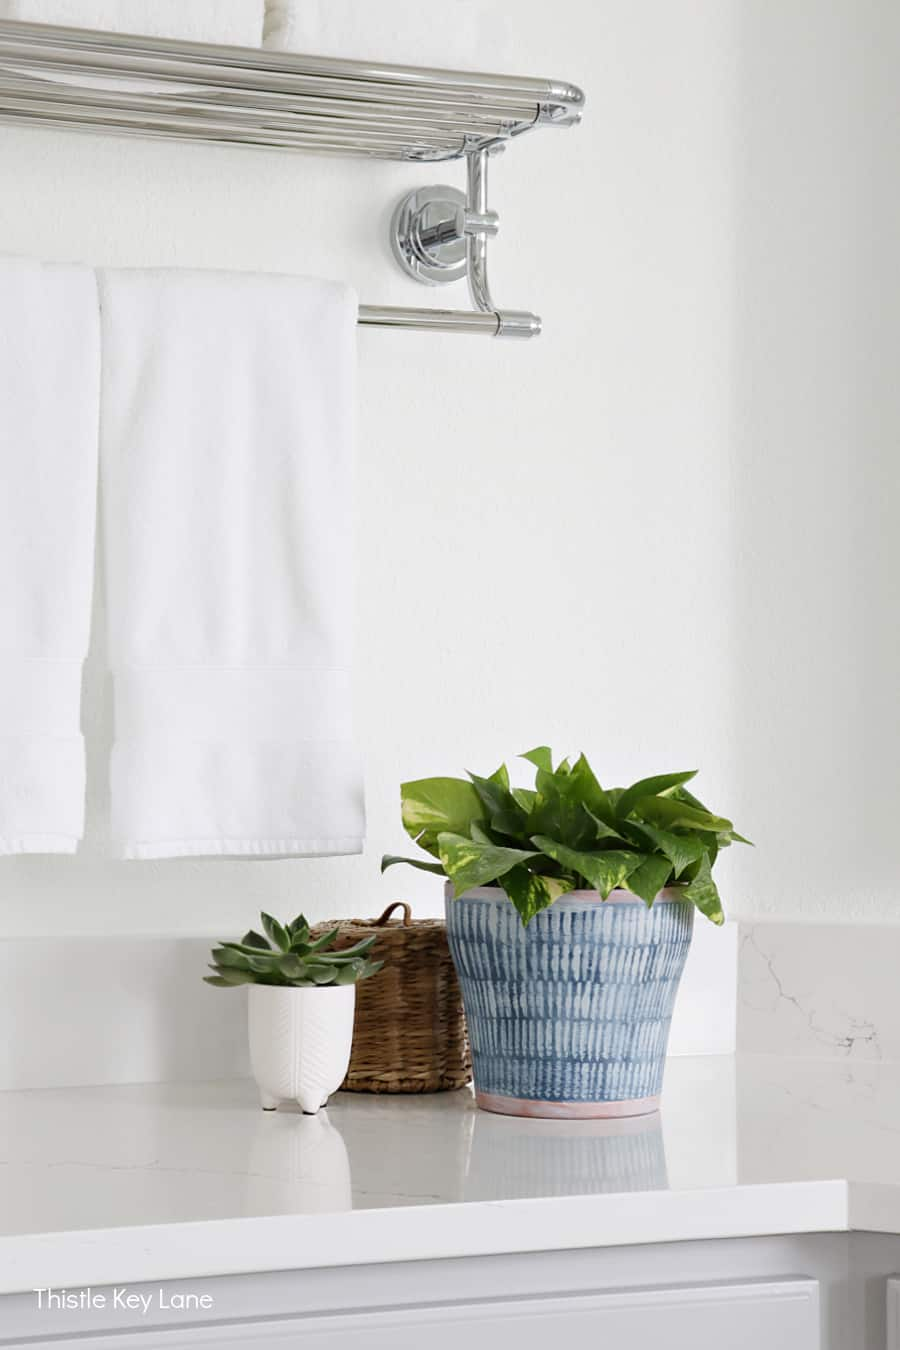 Plants in decorative containers on the bathroom counter. How To Hand Paint A Cachepot.